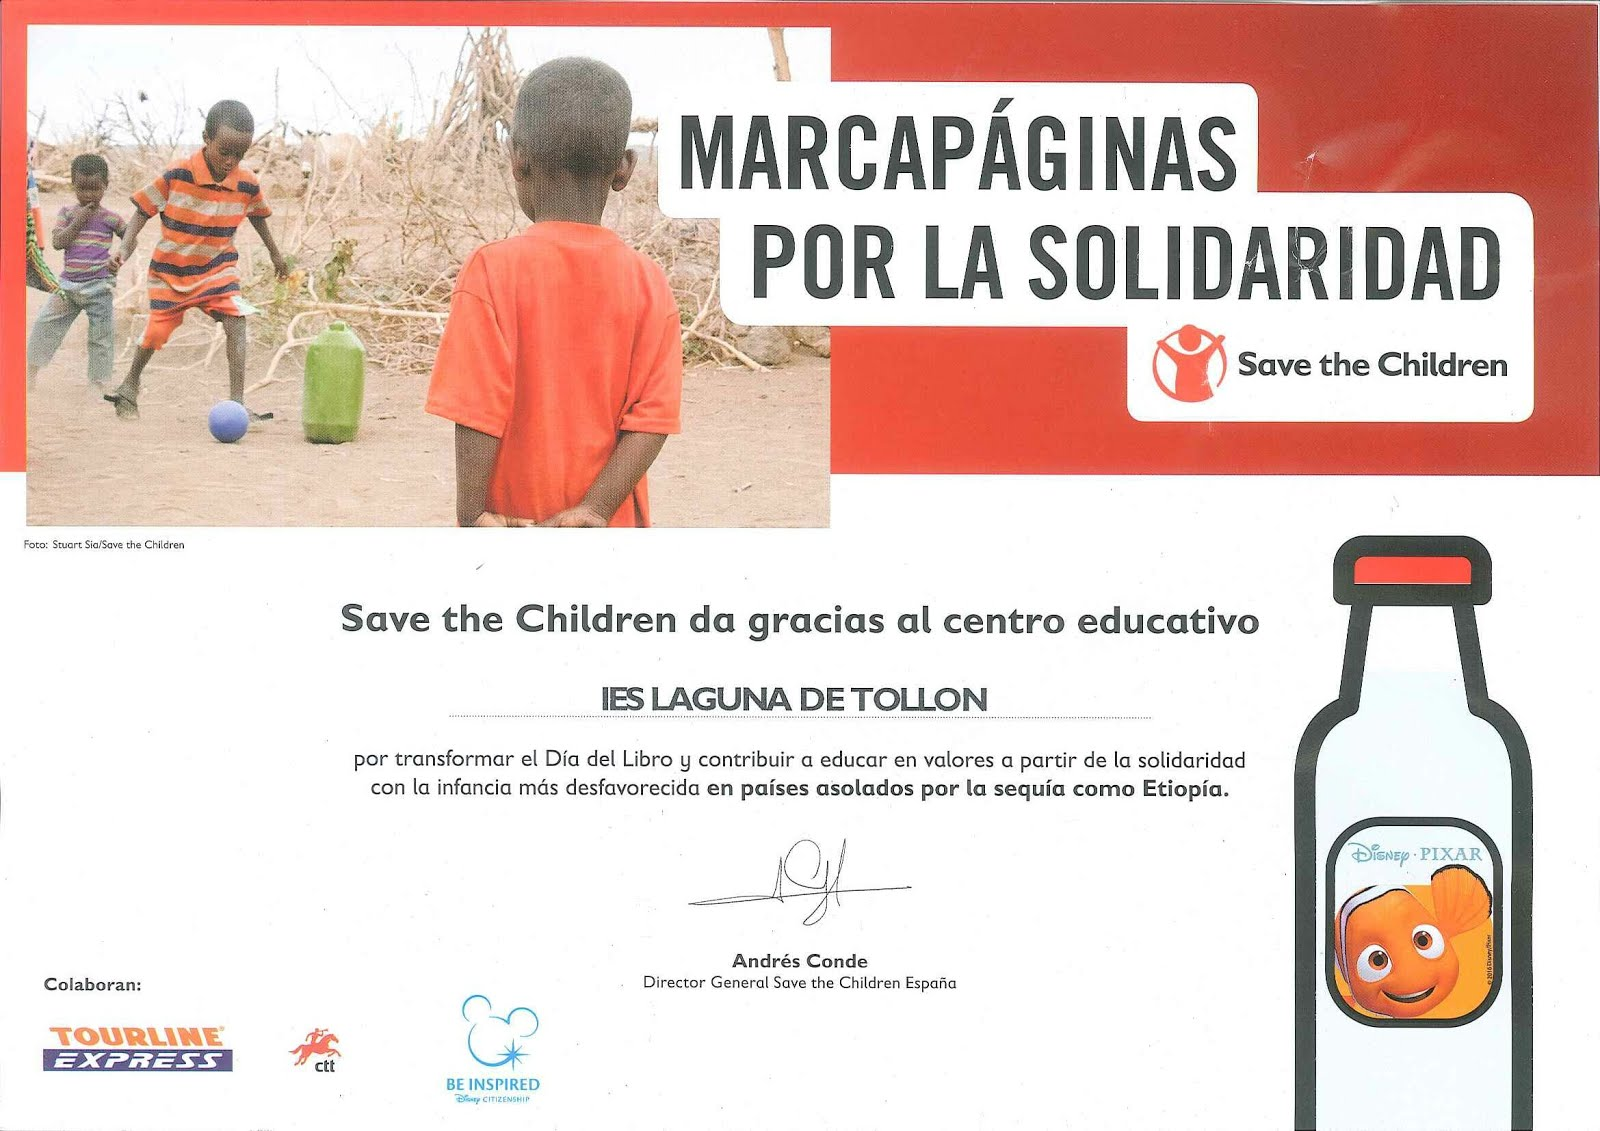 Marcapáginas por la solidaridad